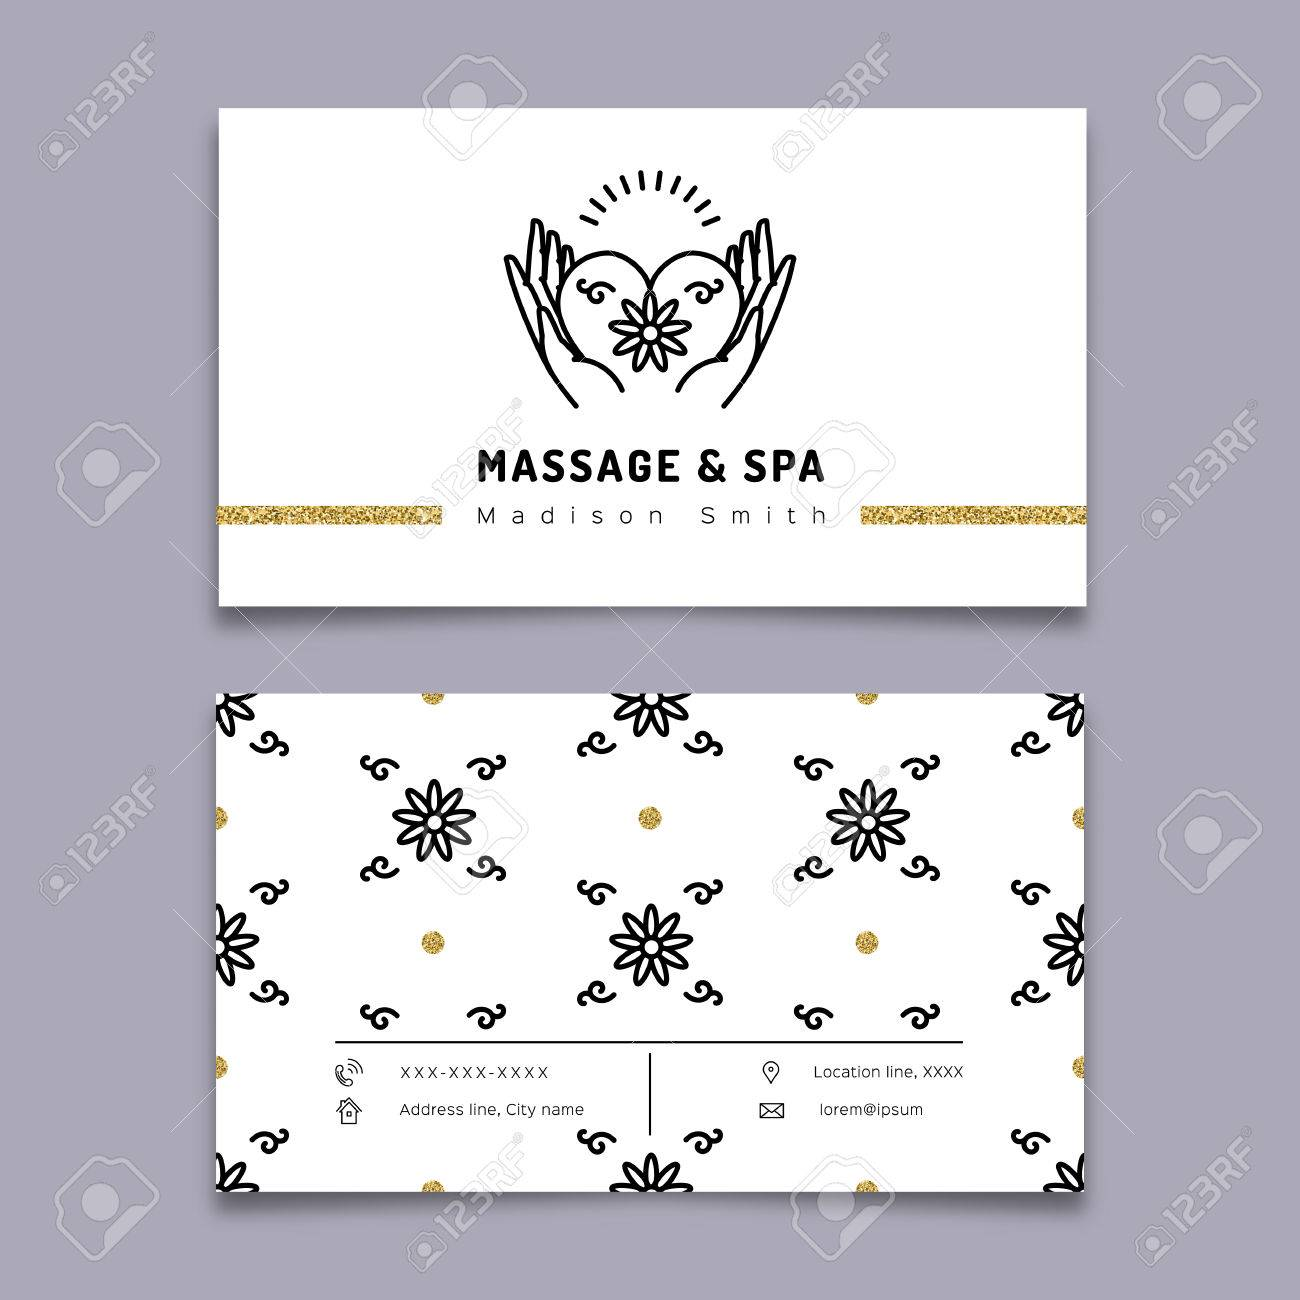 Vector Massage And Spa Therapy Business Card Template. Trendy ...